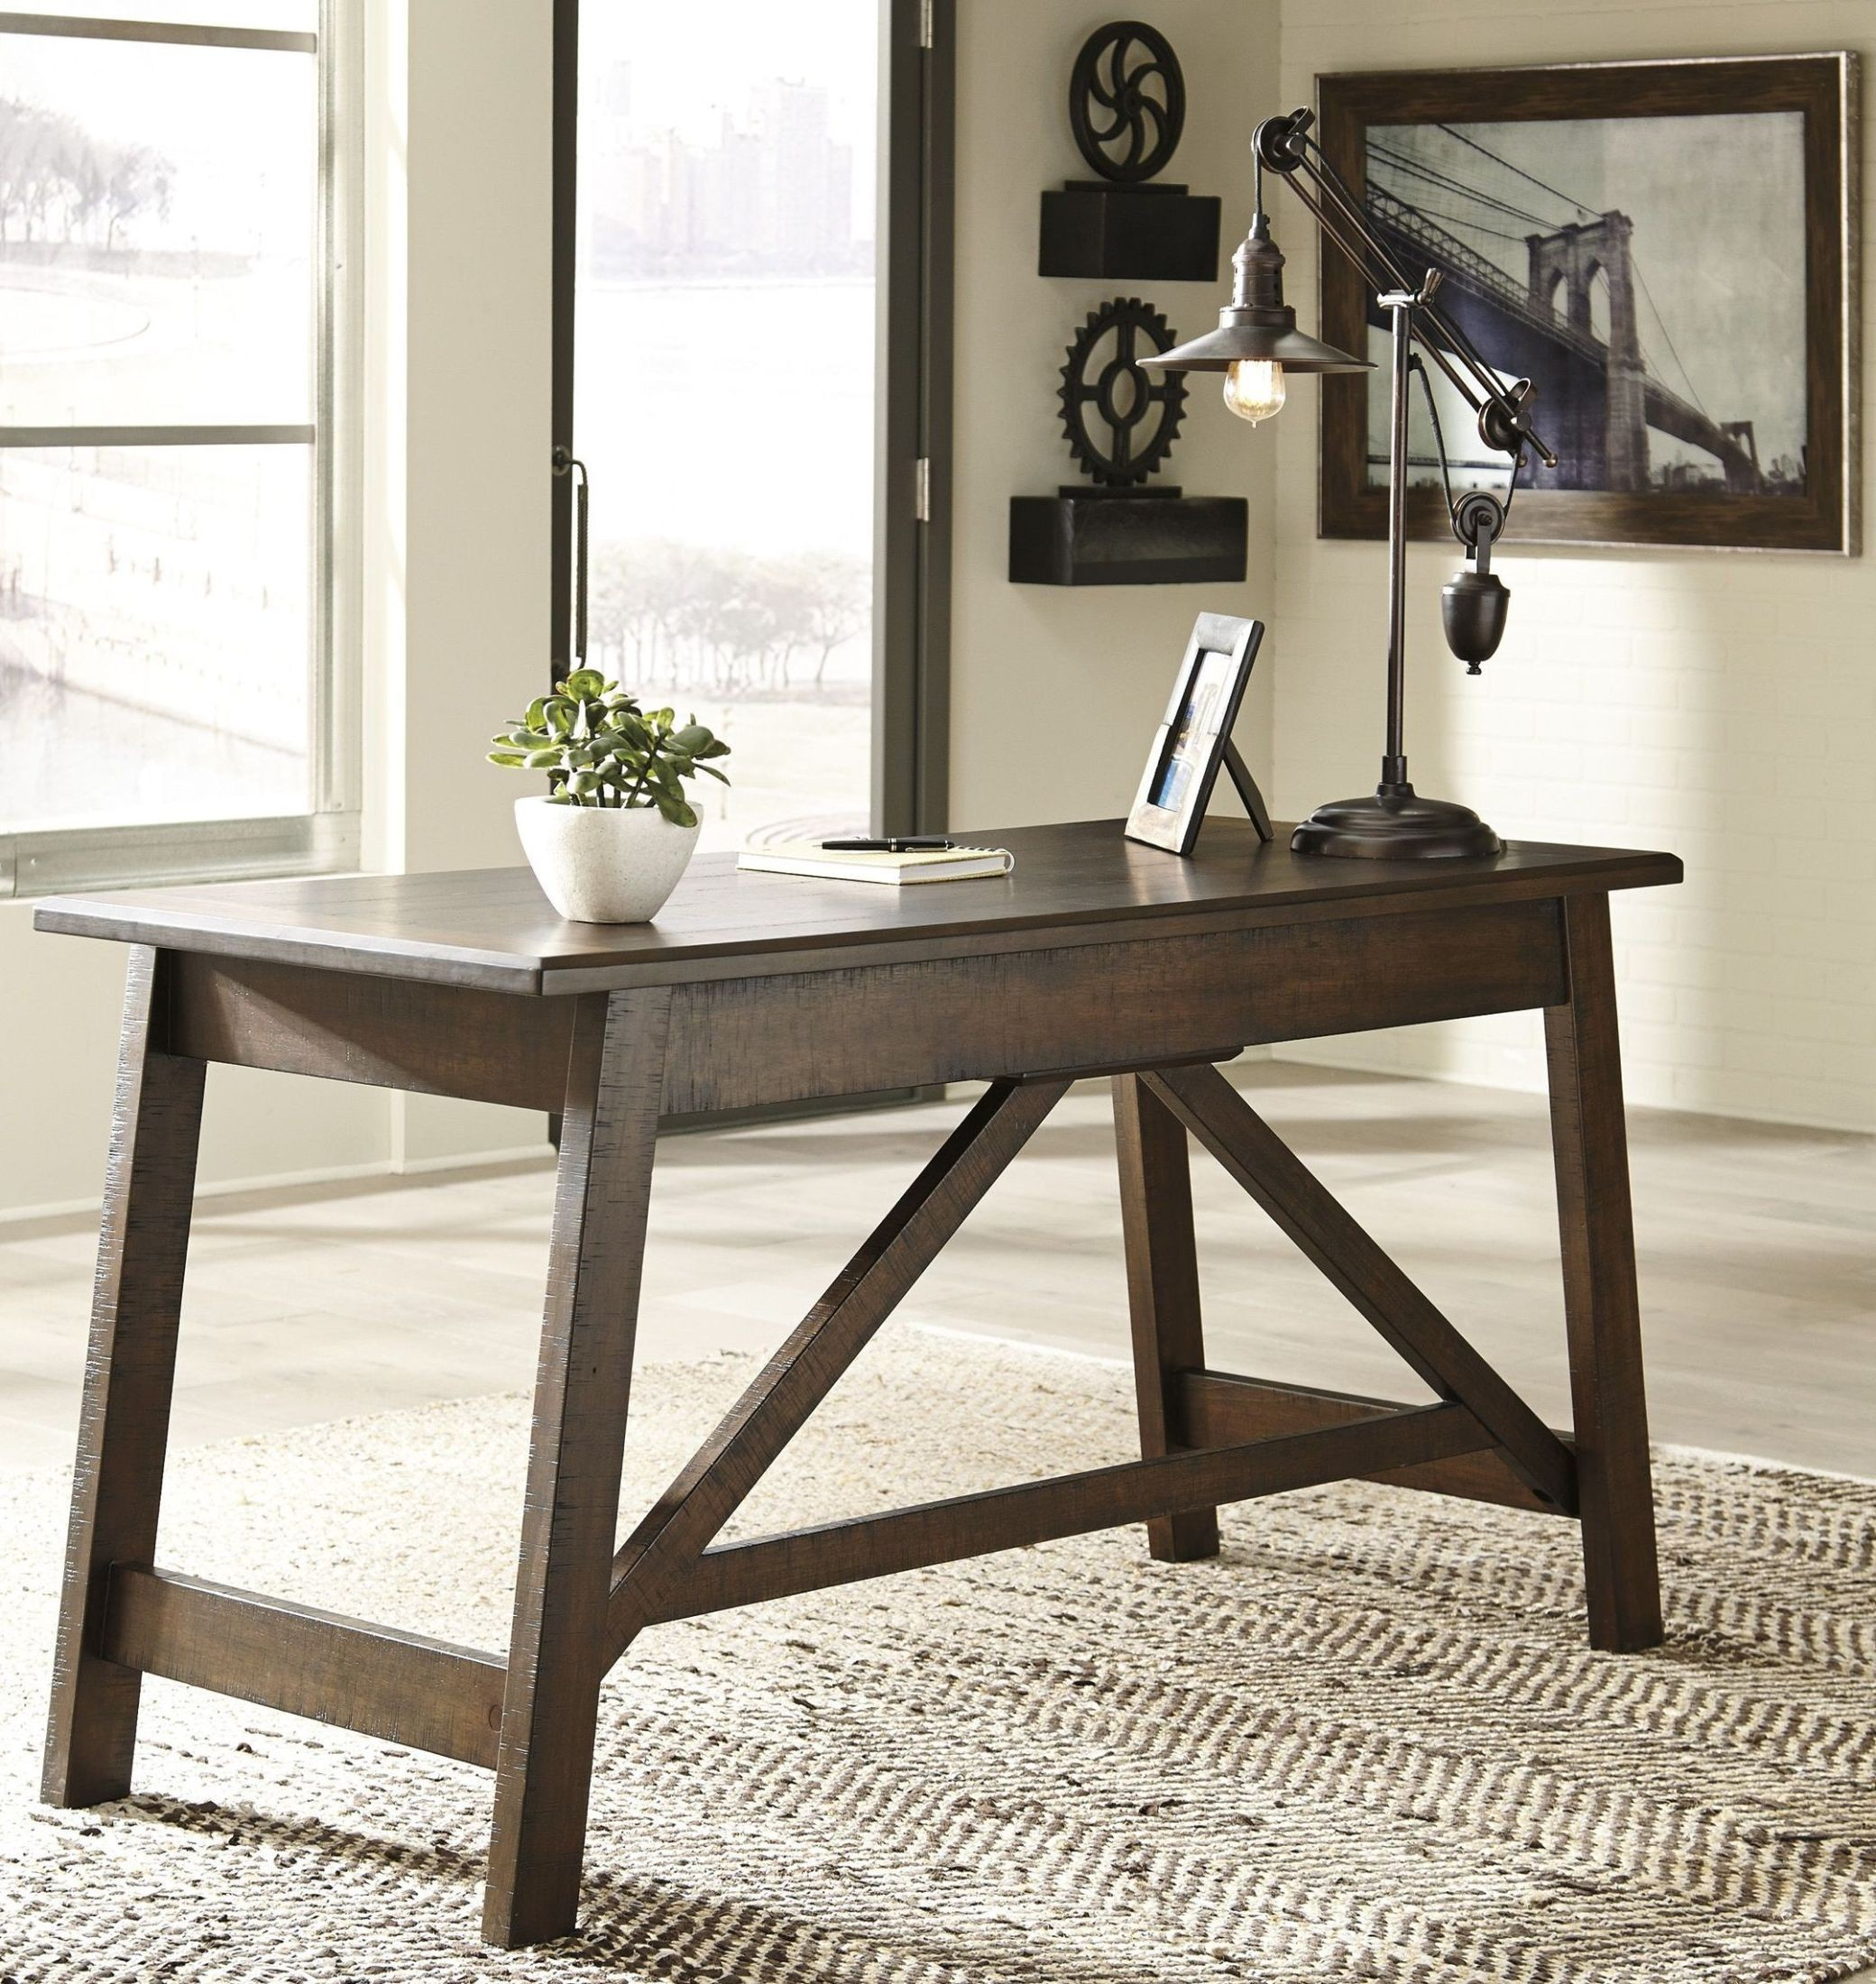 otd office desk pull asp mountainphotoschool signature with burkesville ashley by desks out furniture design colder collections home and veneer tray mou com cabinet birch